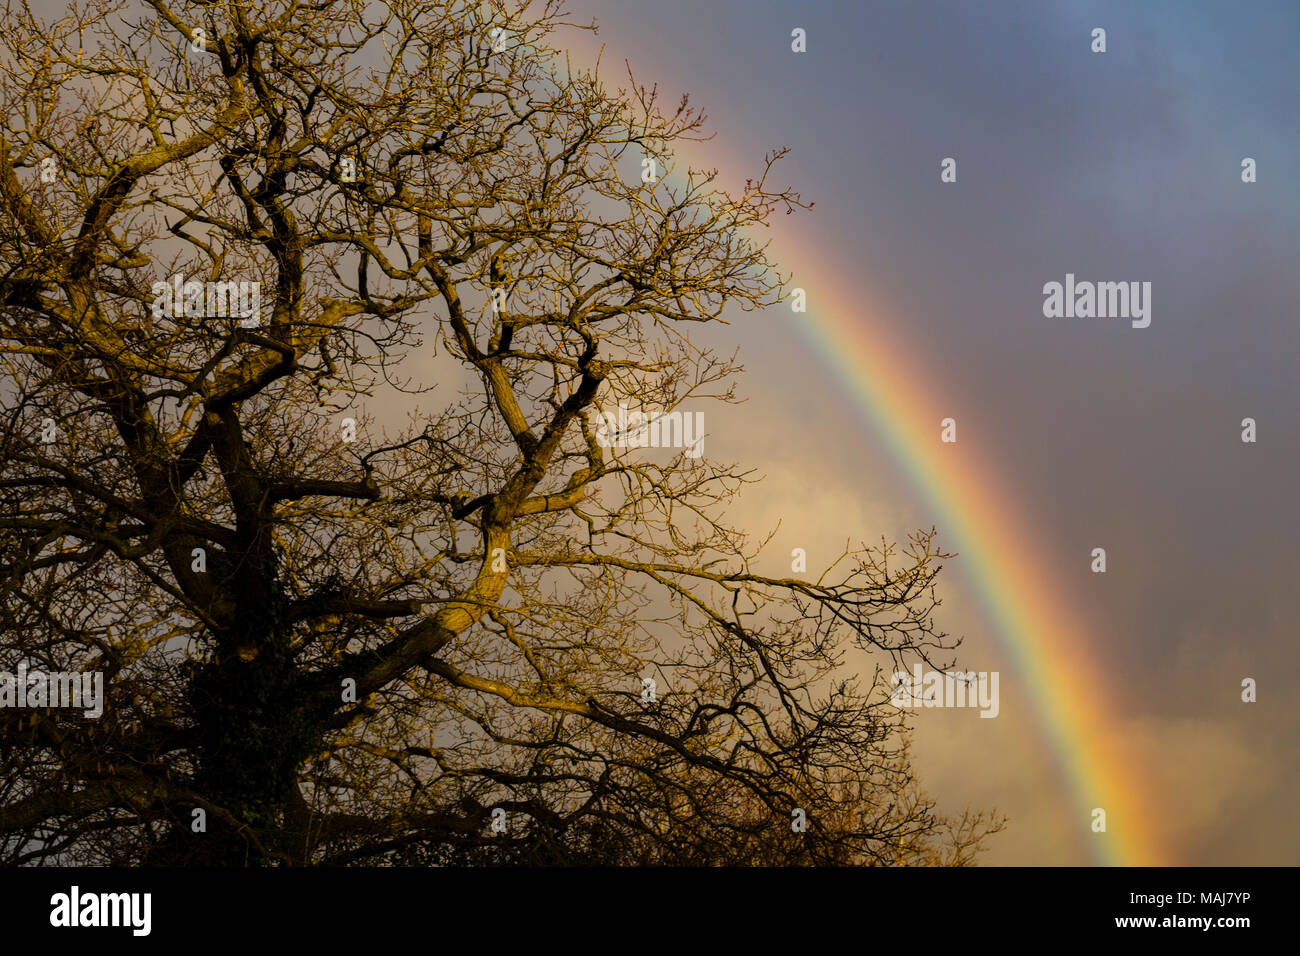 Rainbow behind a bare oak tree in winter - Stock Image